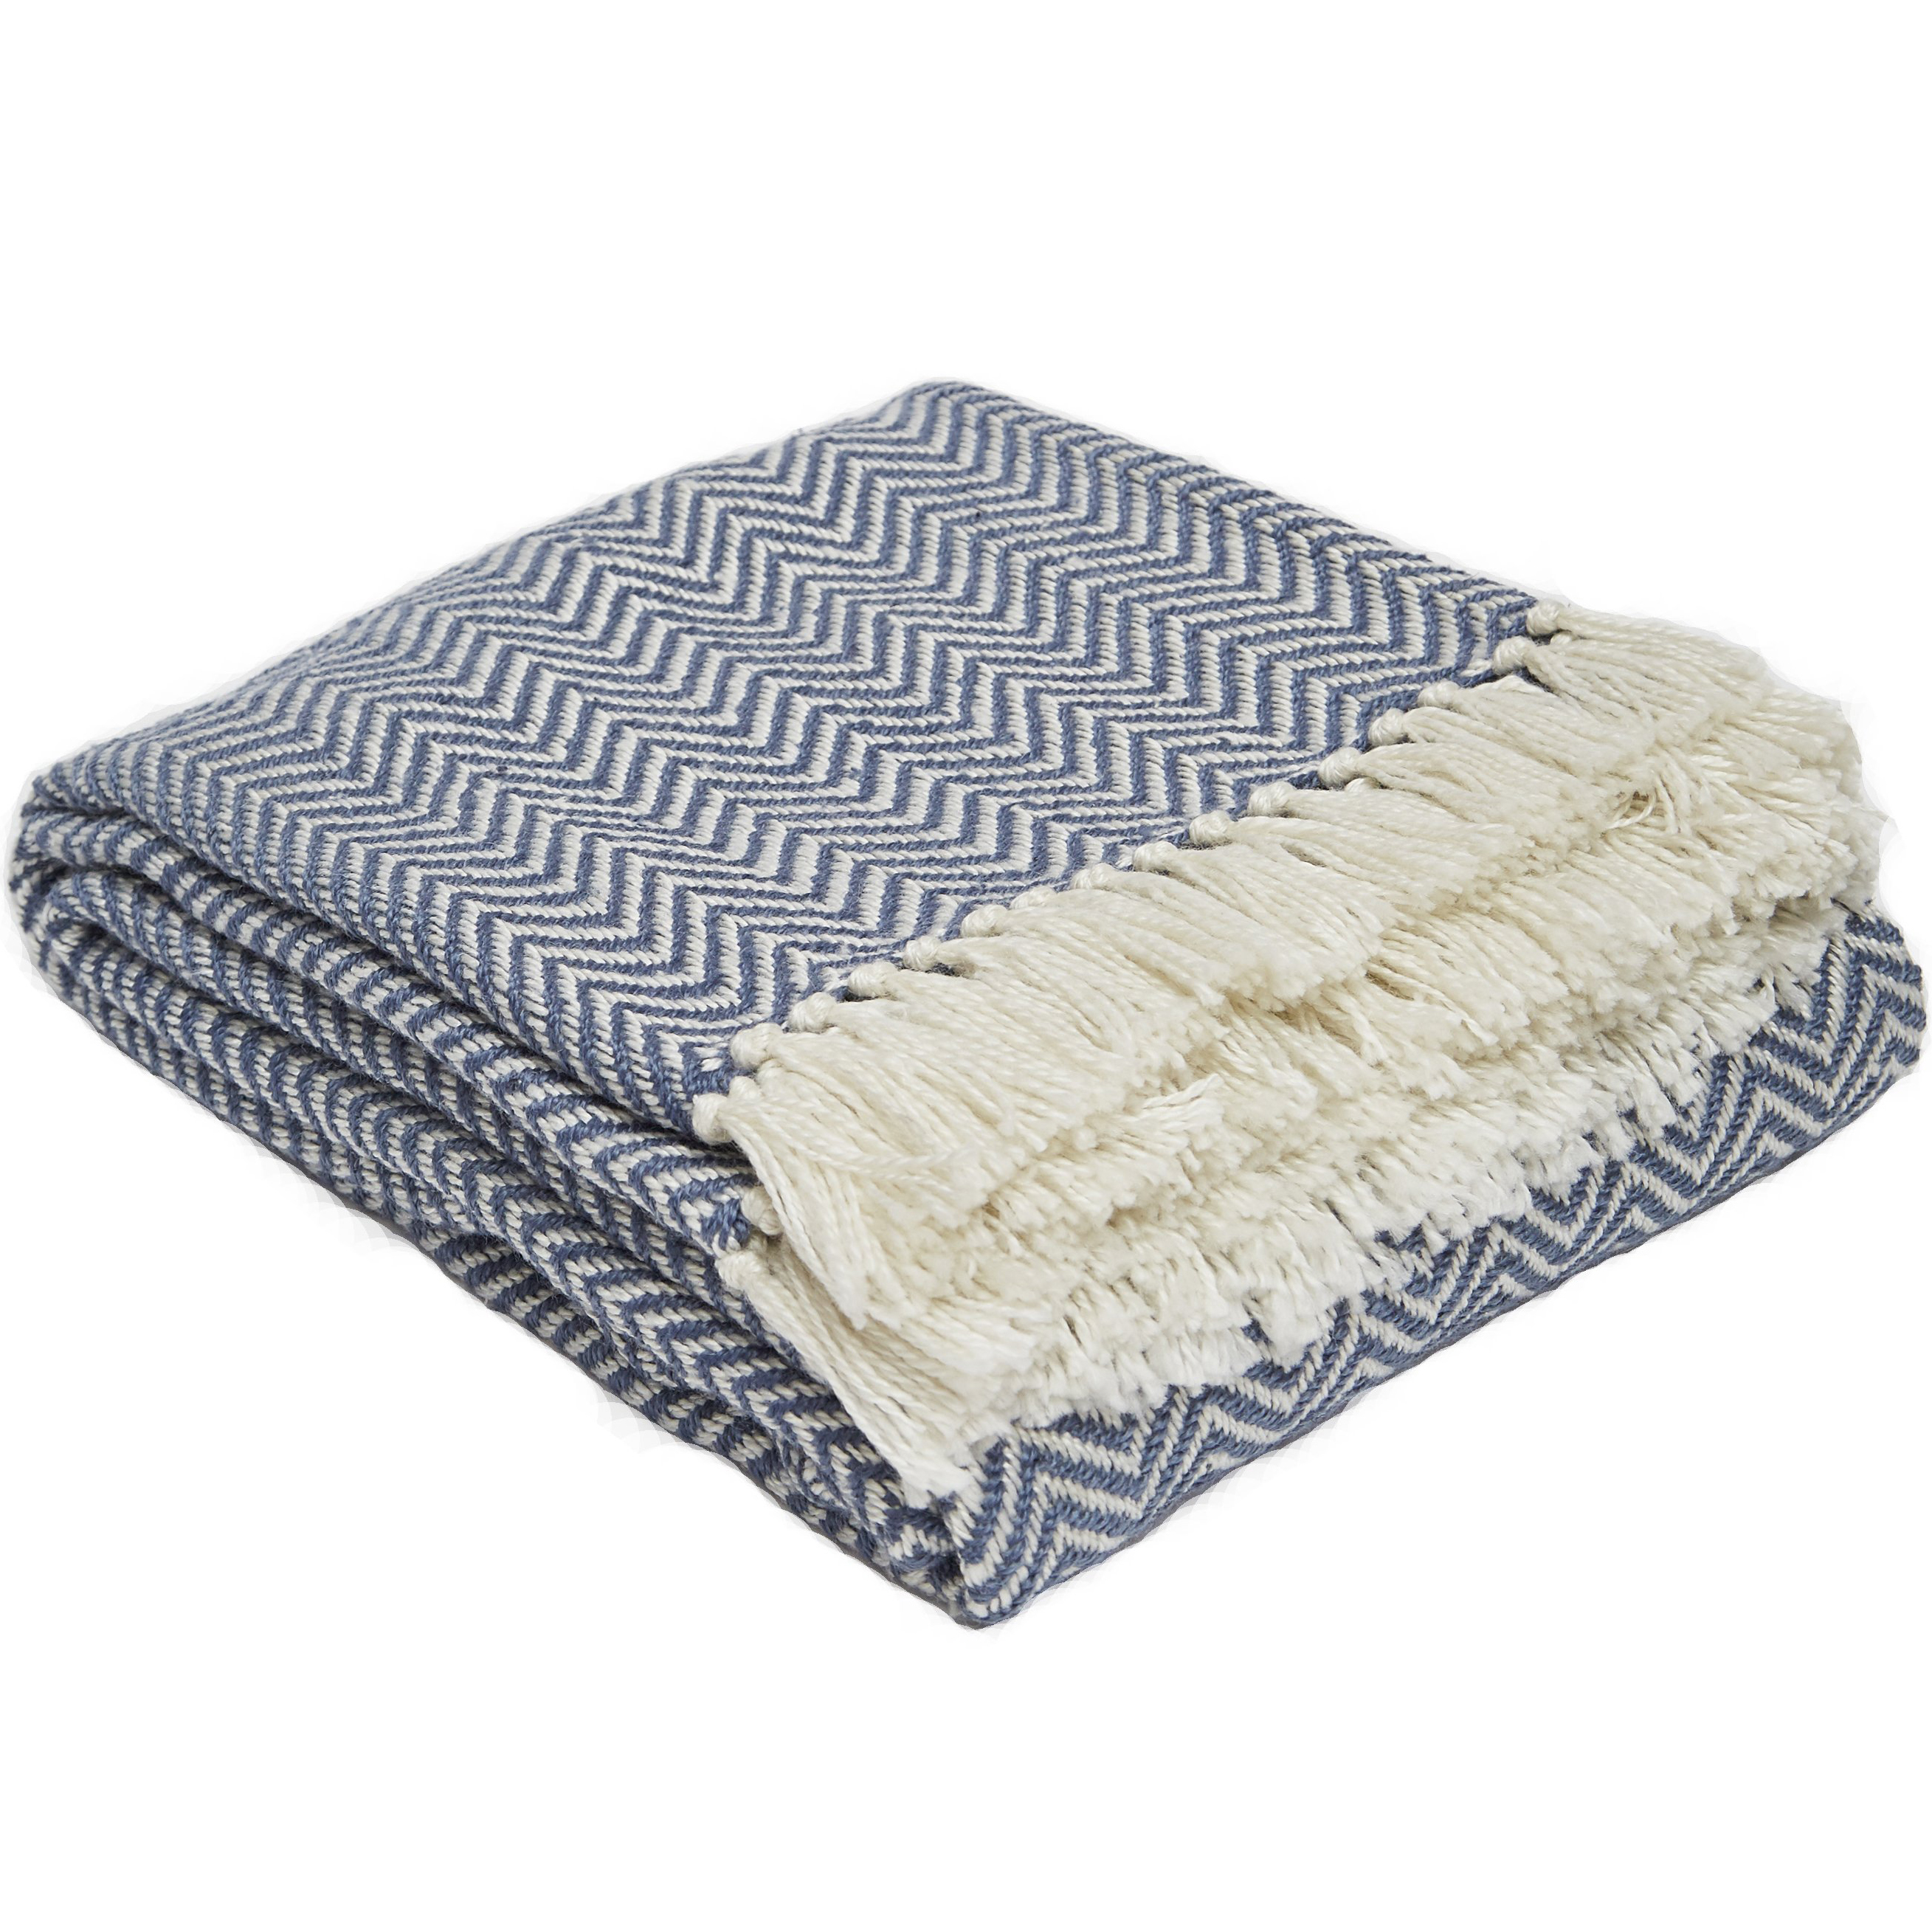 Herringbone | Blanket